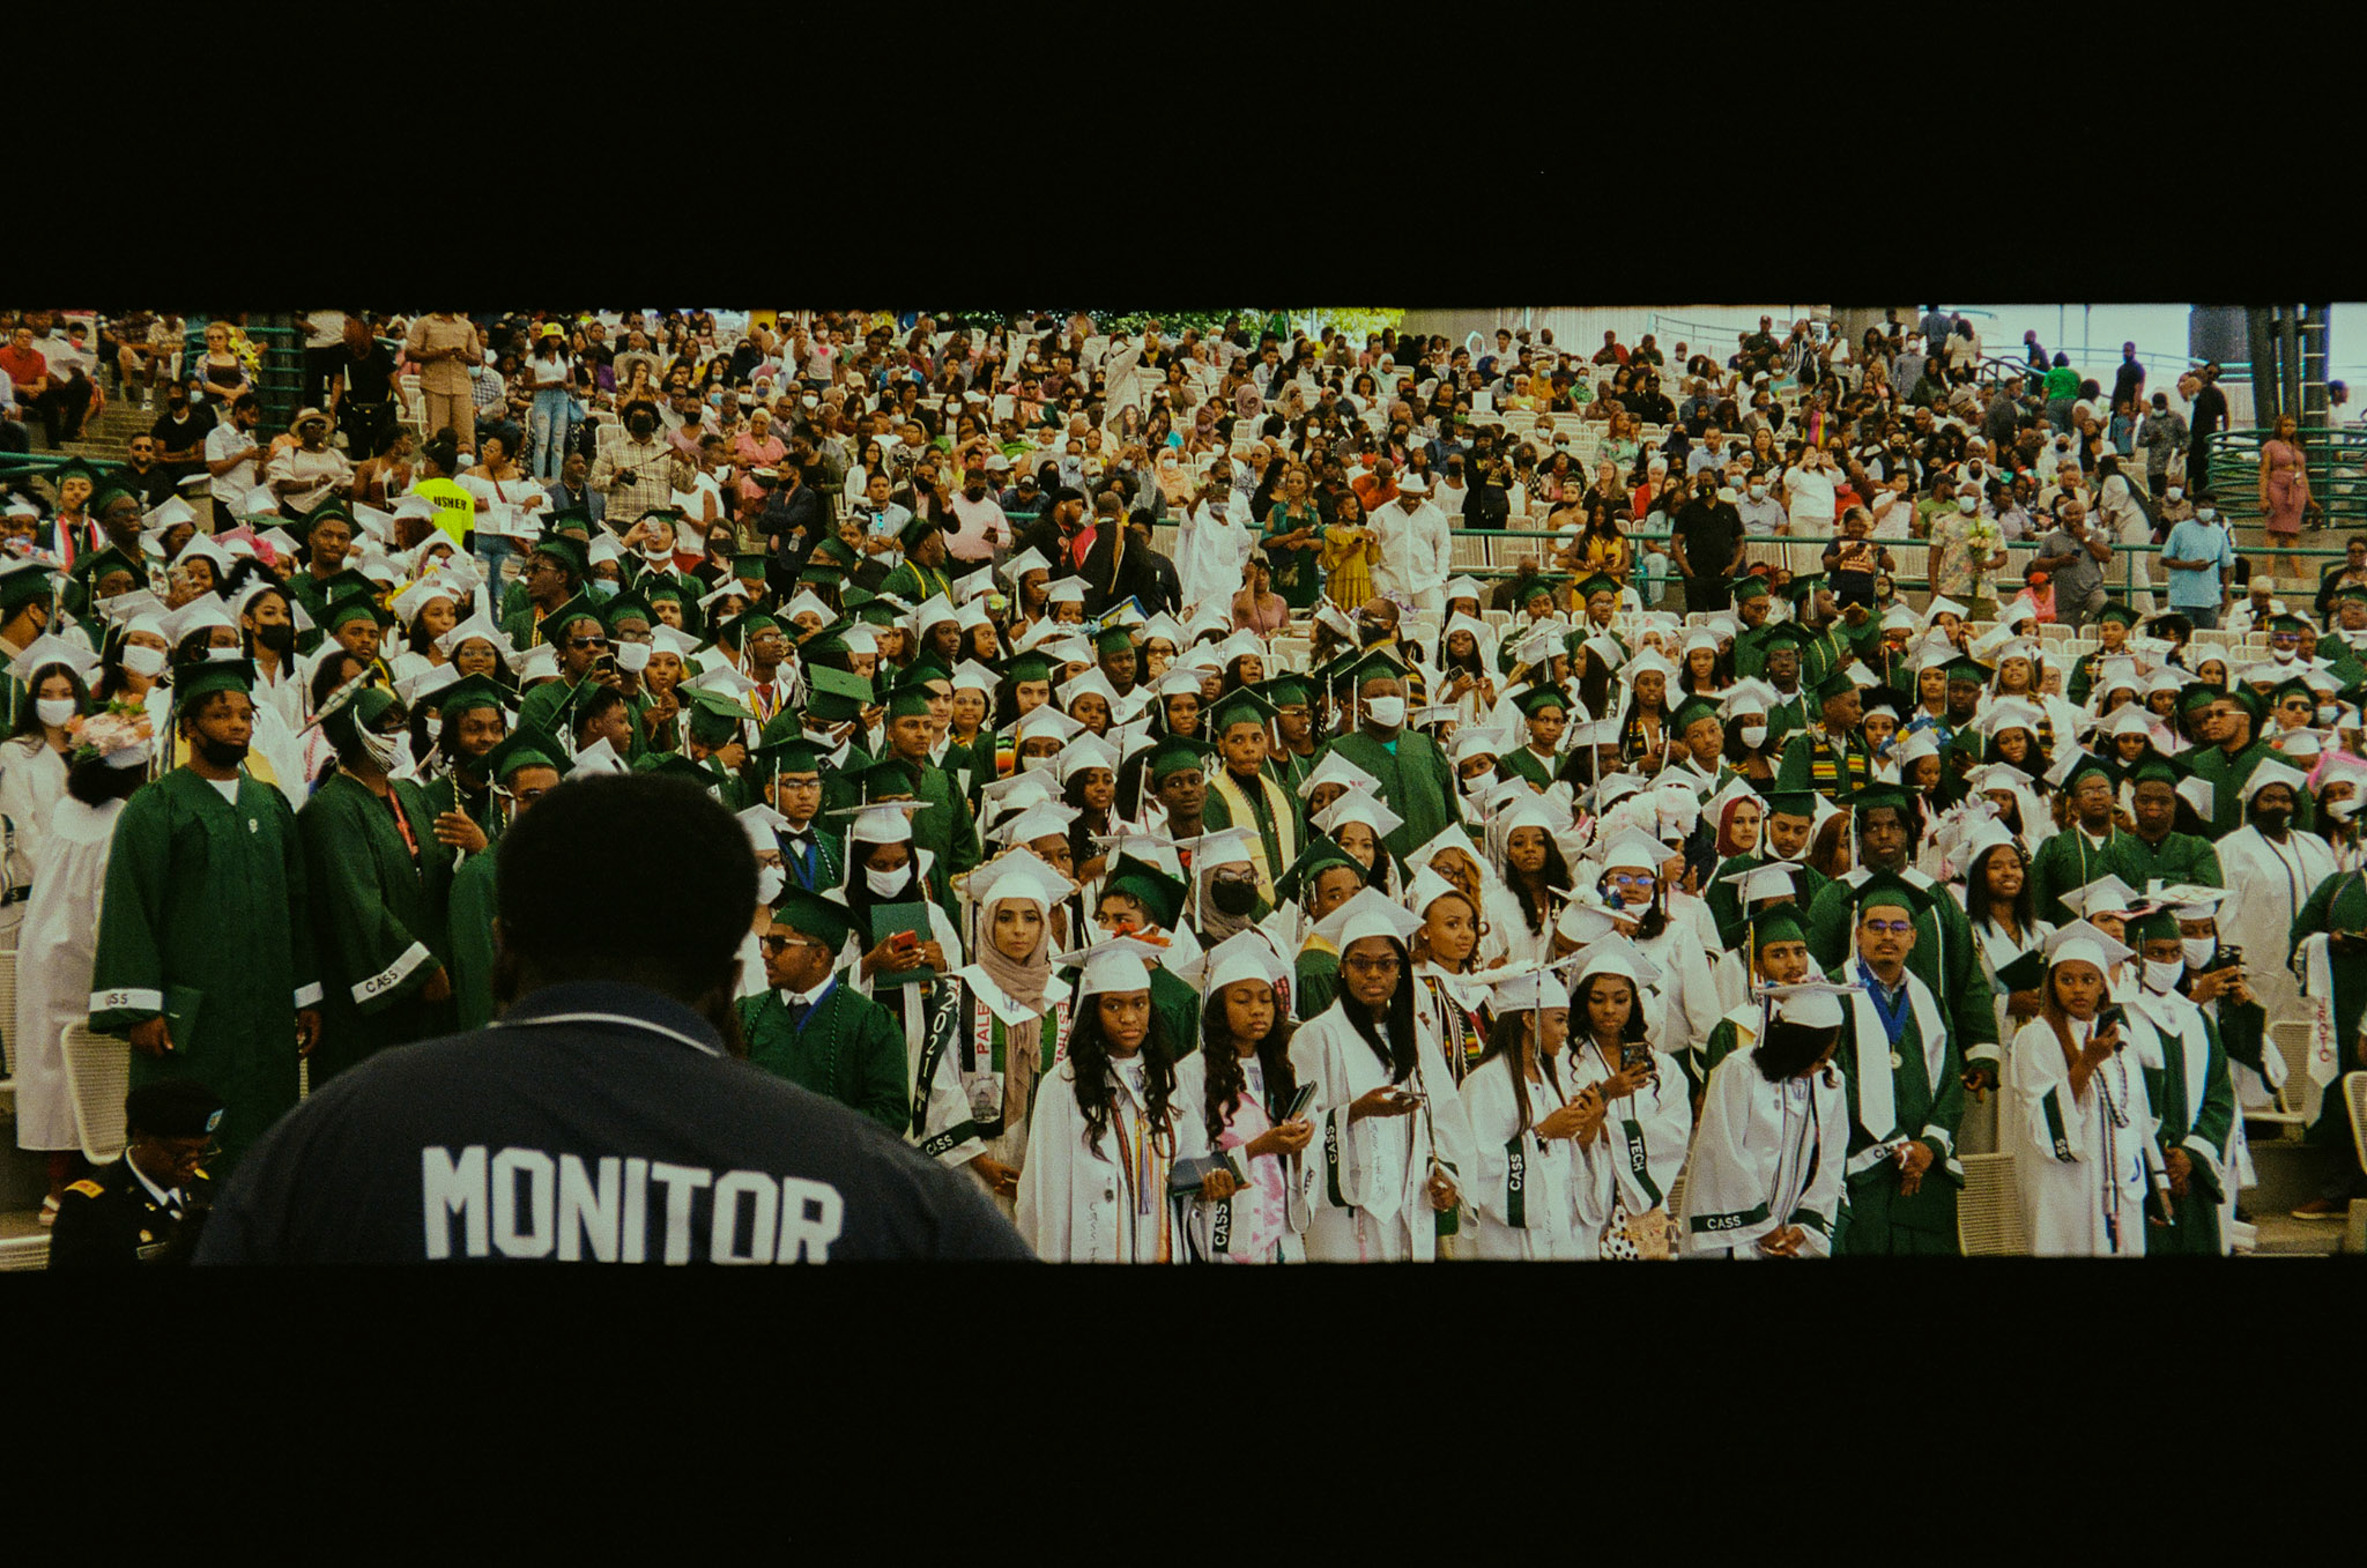 A large group of graduating high school students, wearing green and white caps and gowns, stand in neat rows as their parents look on behind them.